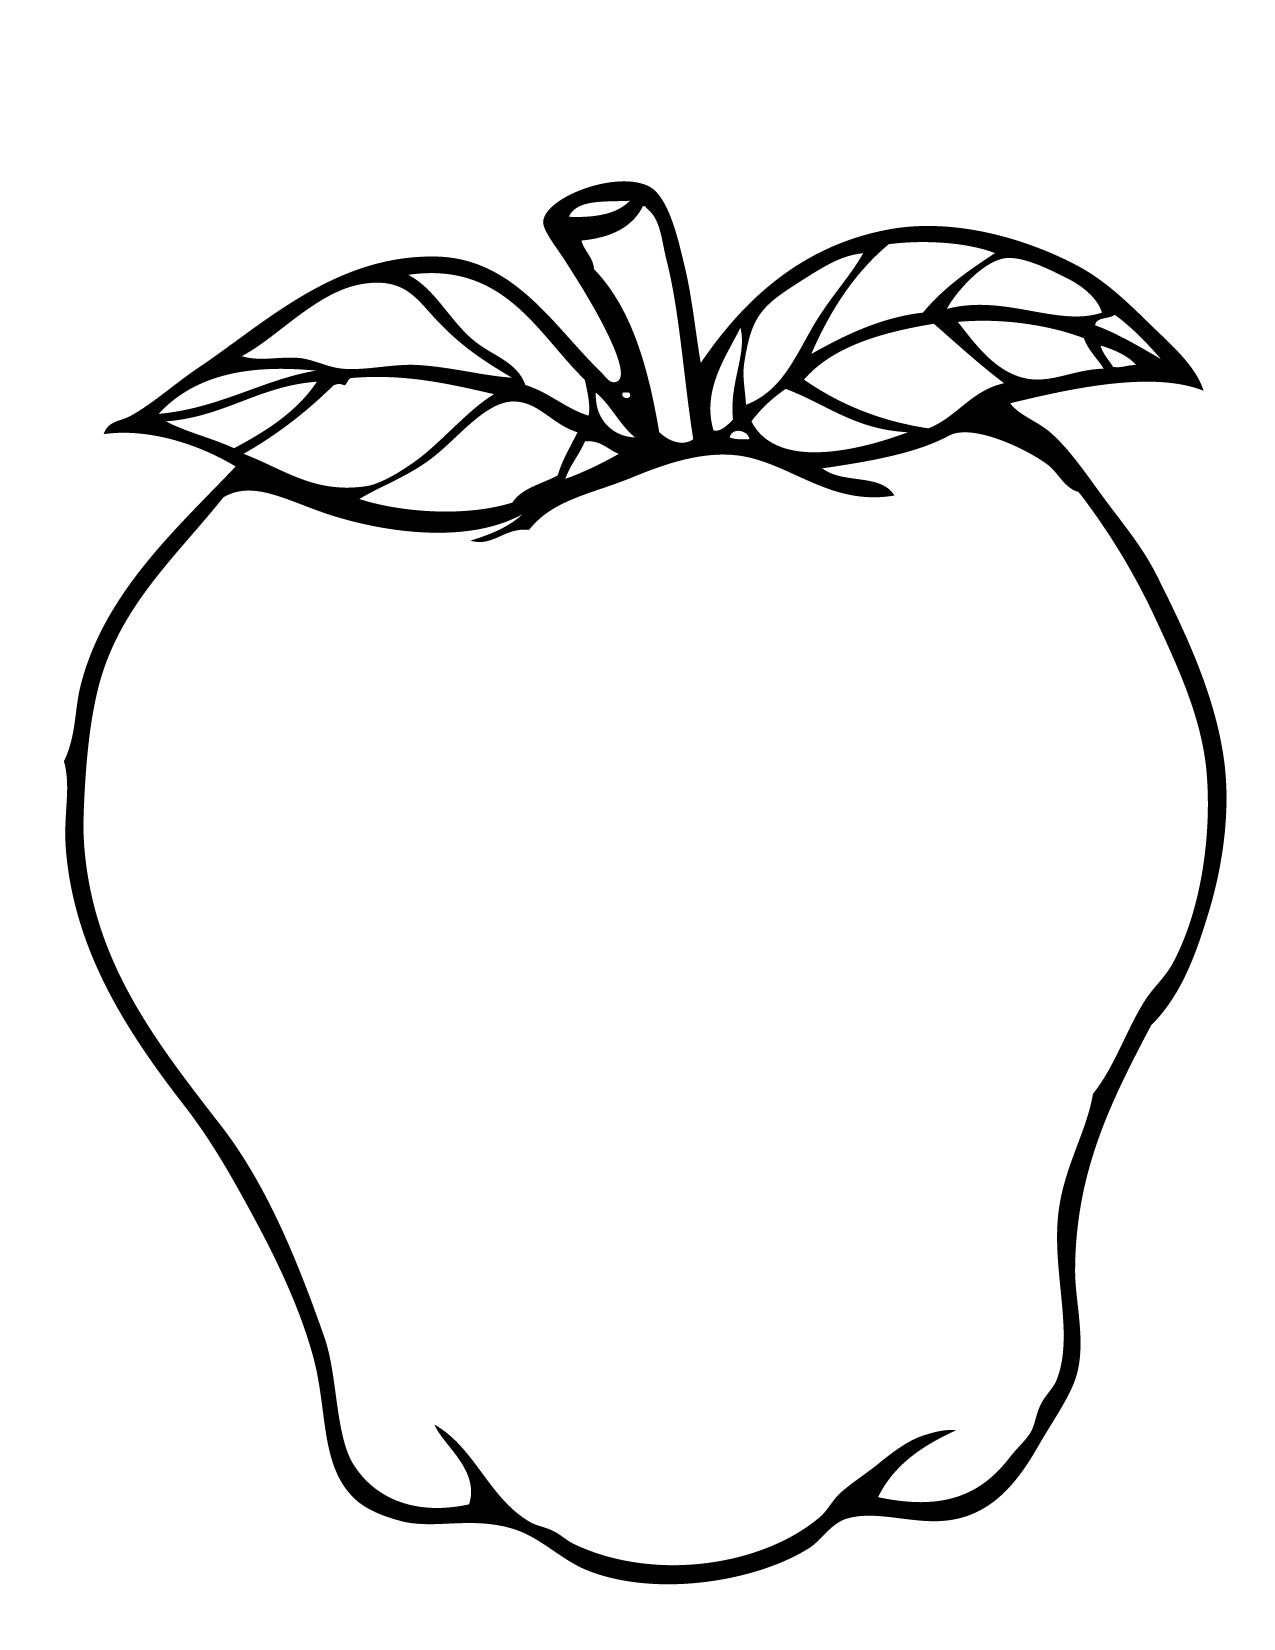 coloring pages apple free printable apple coloring pages for kids apple coloring pages